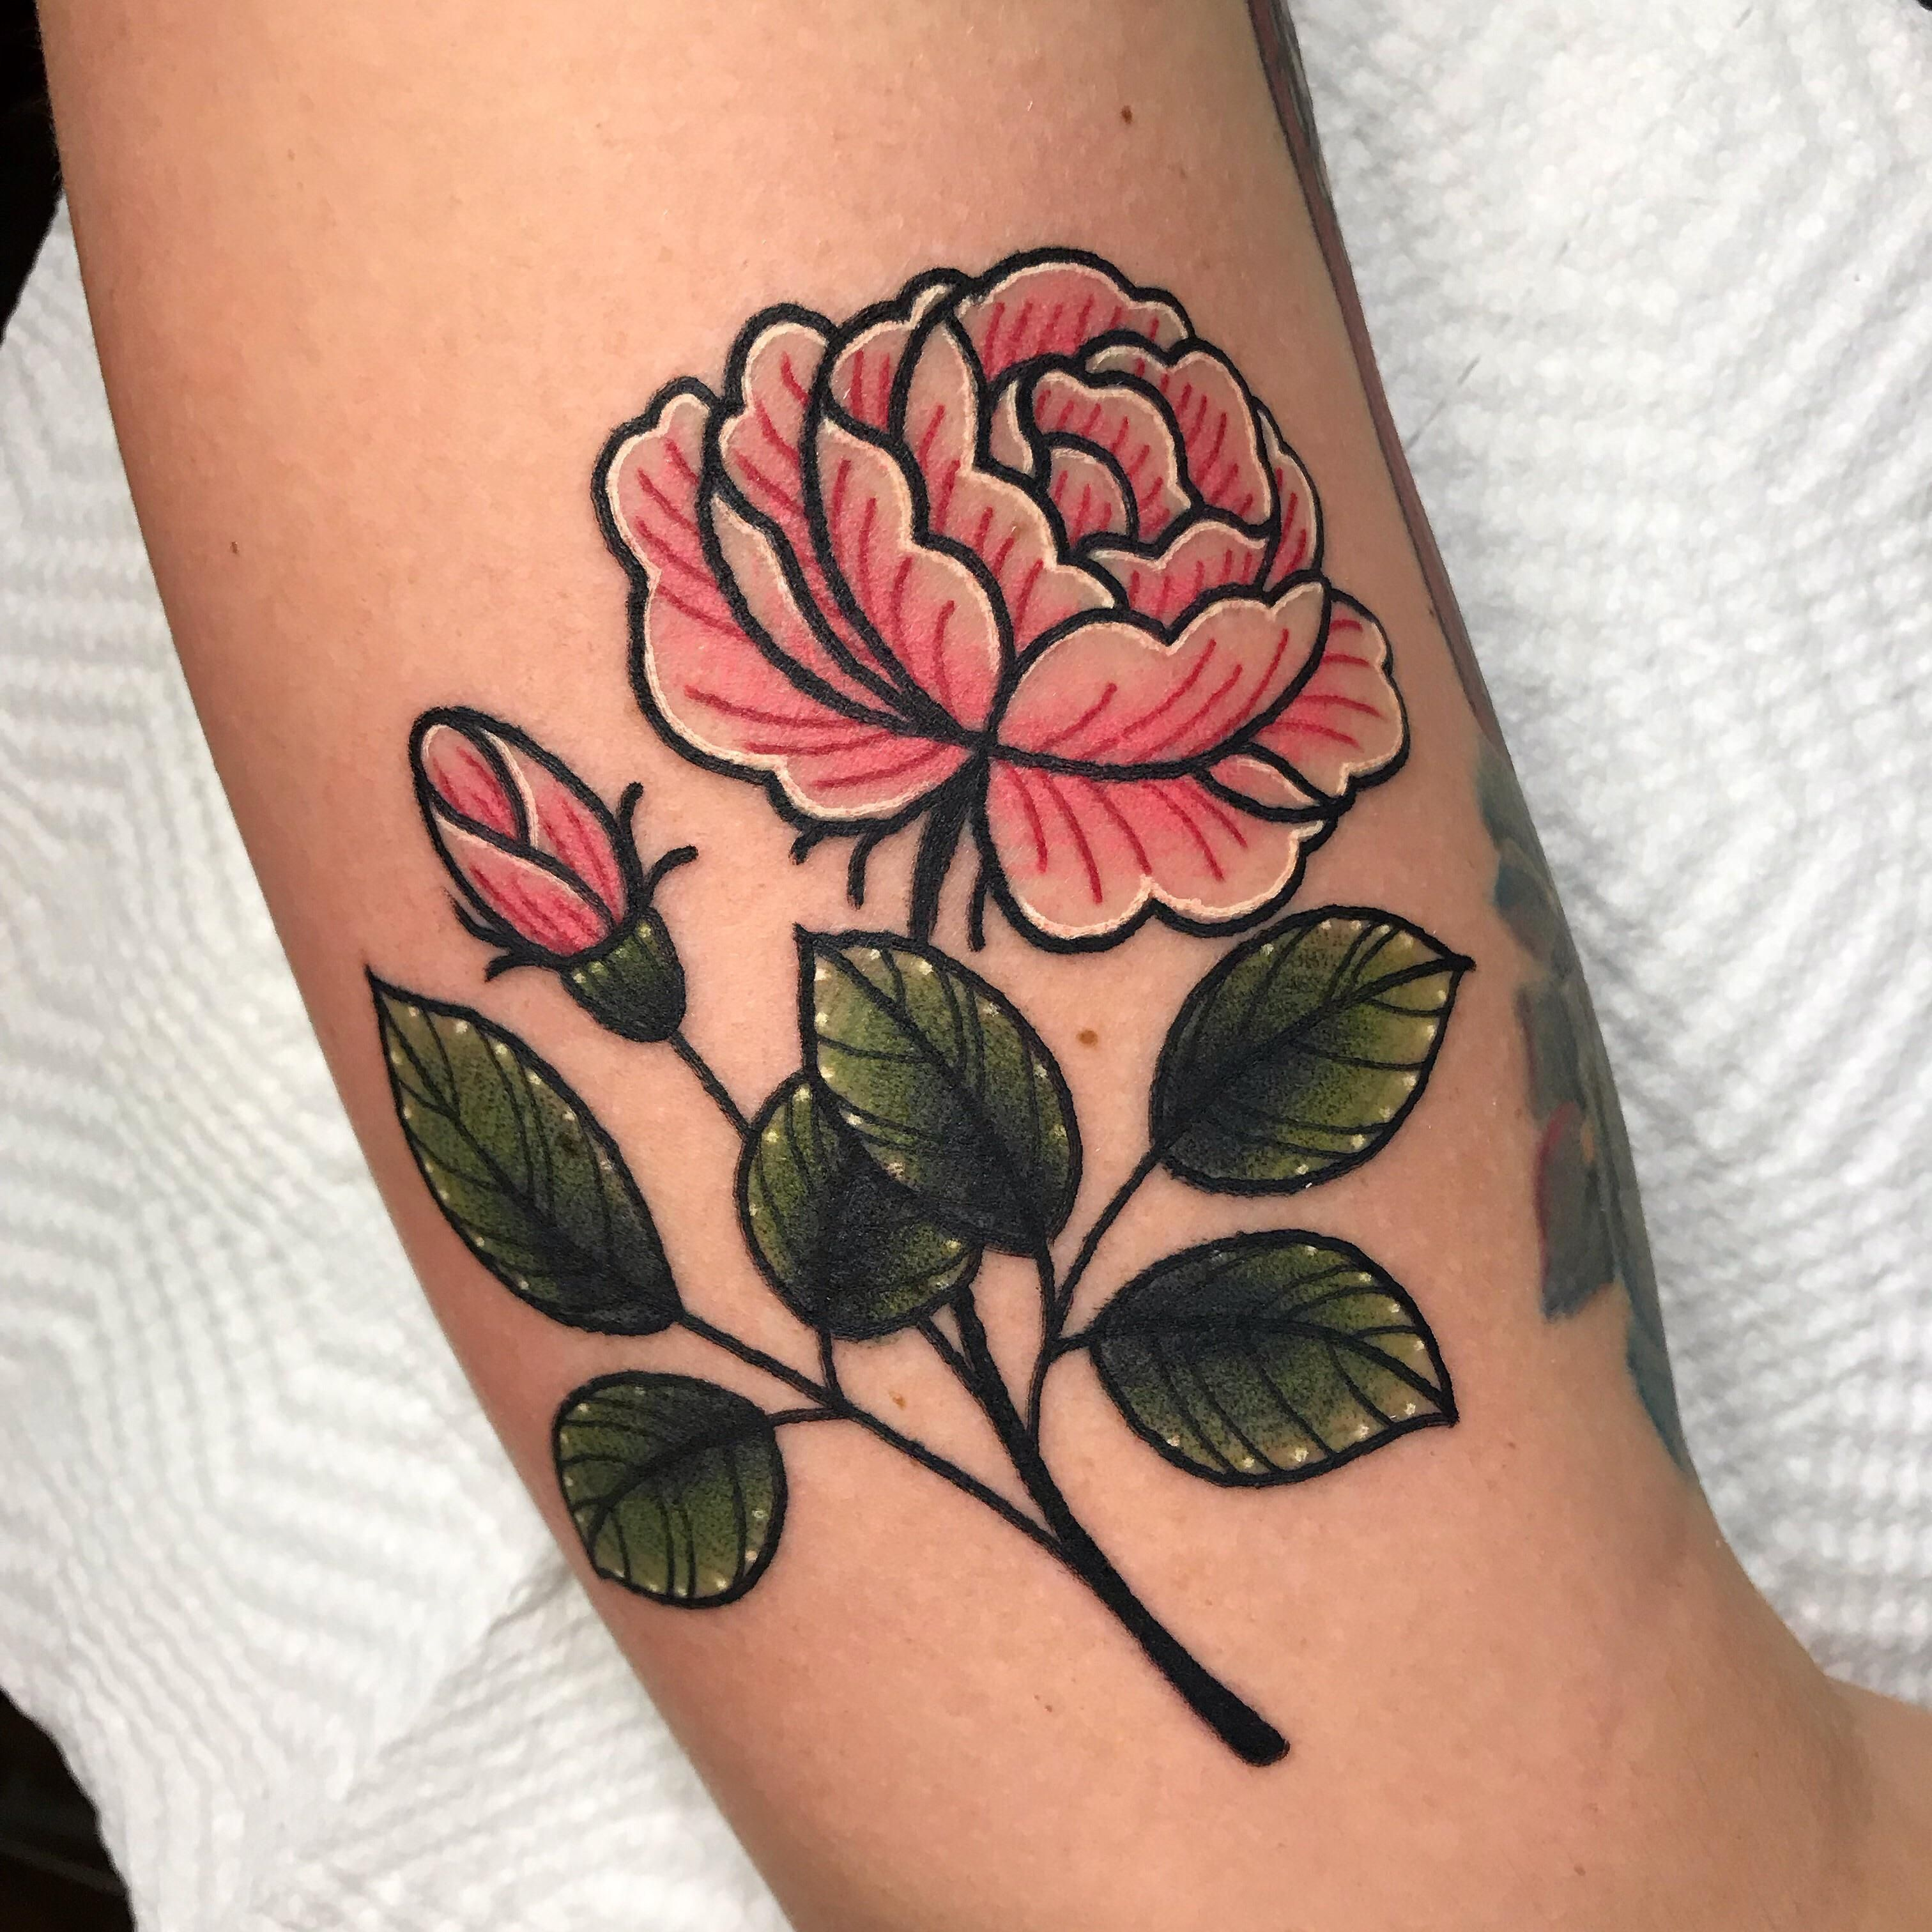 English Rose By Kevin Ray Kevin Ray Tattoos In Gibsonville Nc In 2020 English Rose Tattoos Ray Tattoo Tudor Rose Tattoos